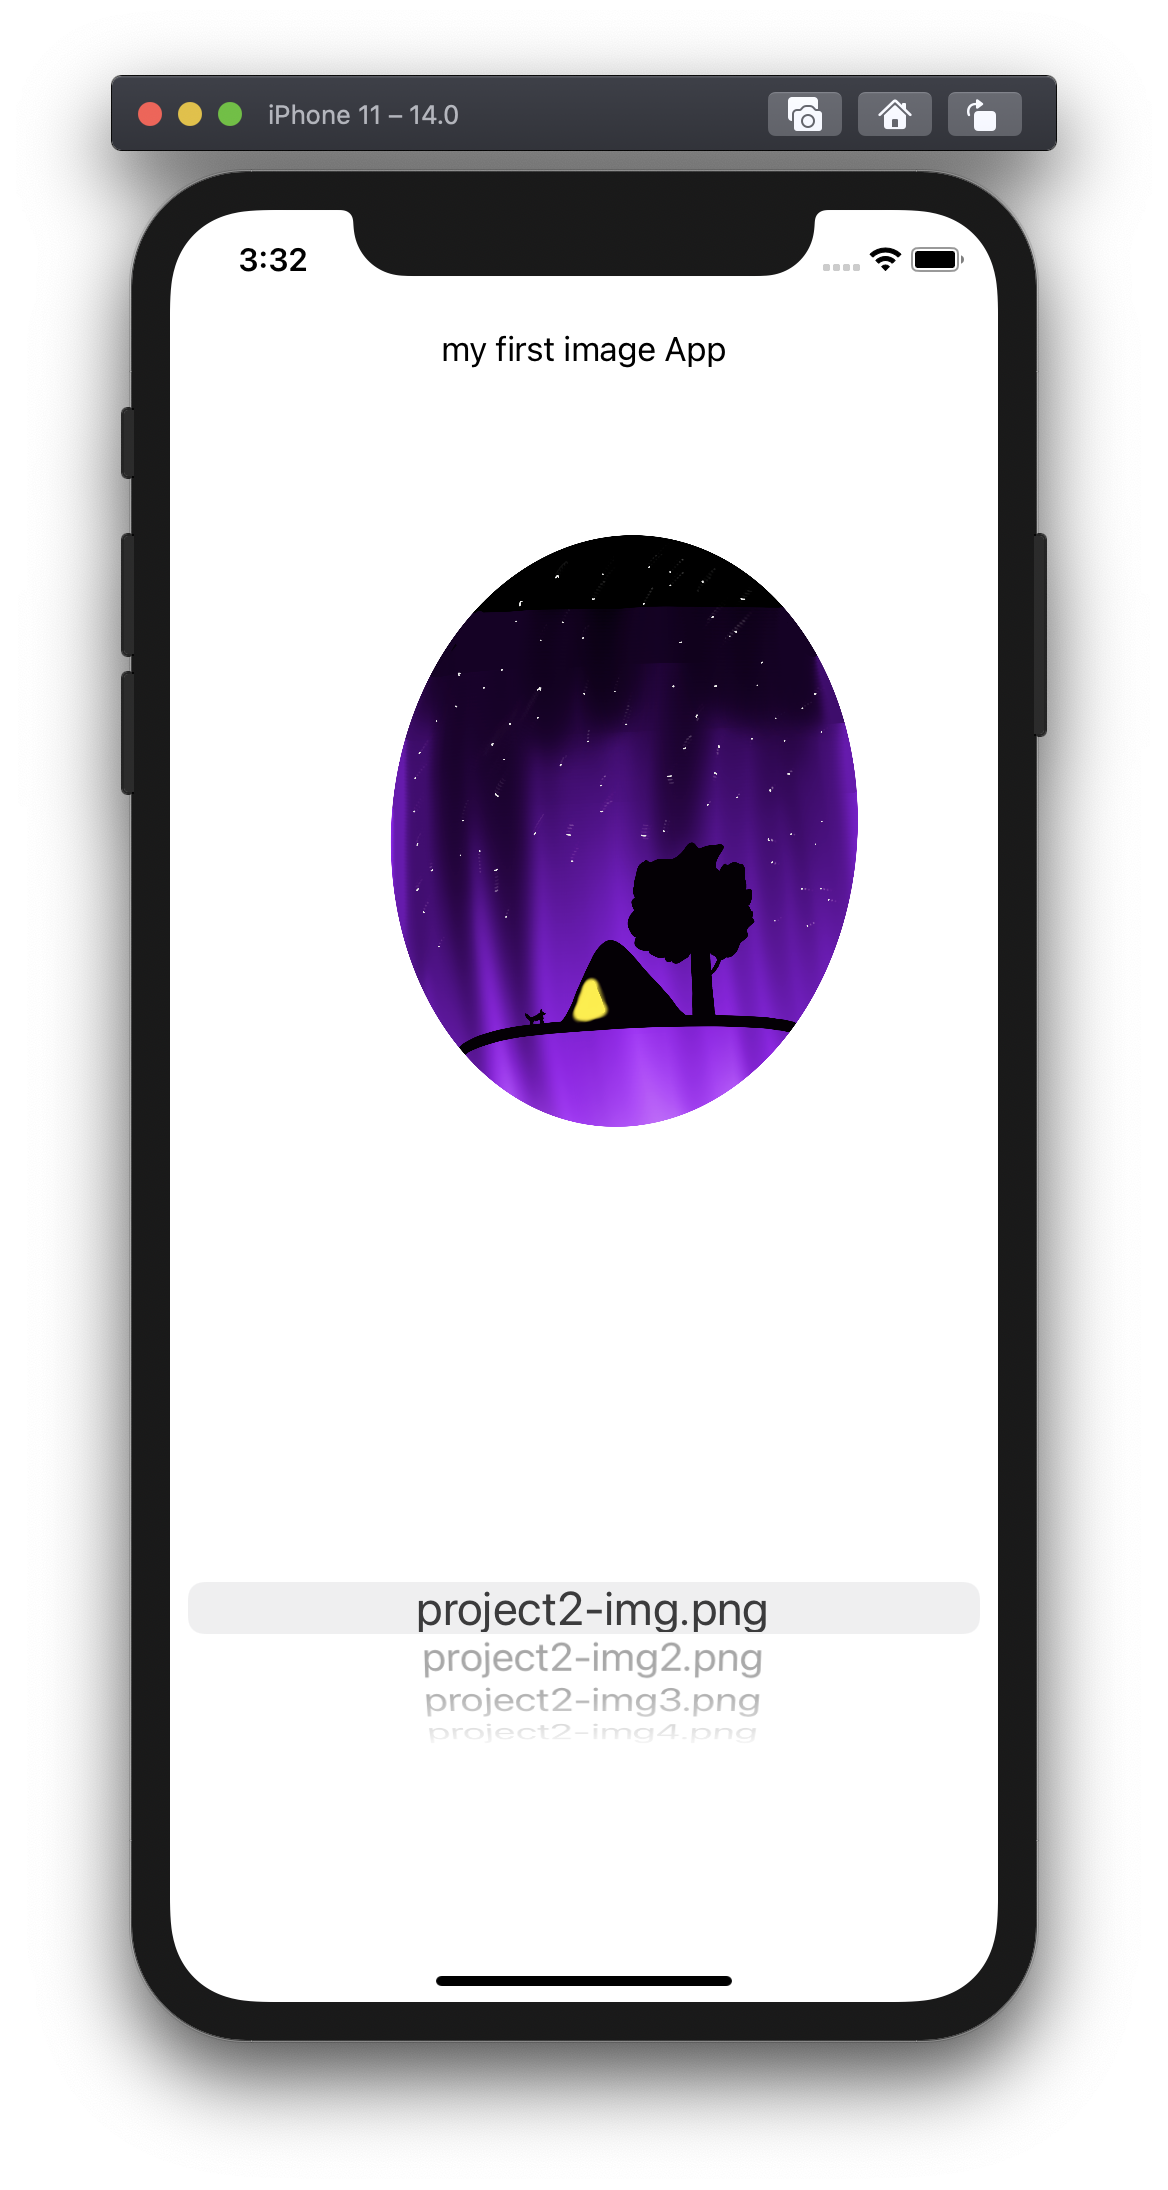 project2-image View